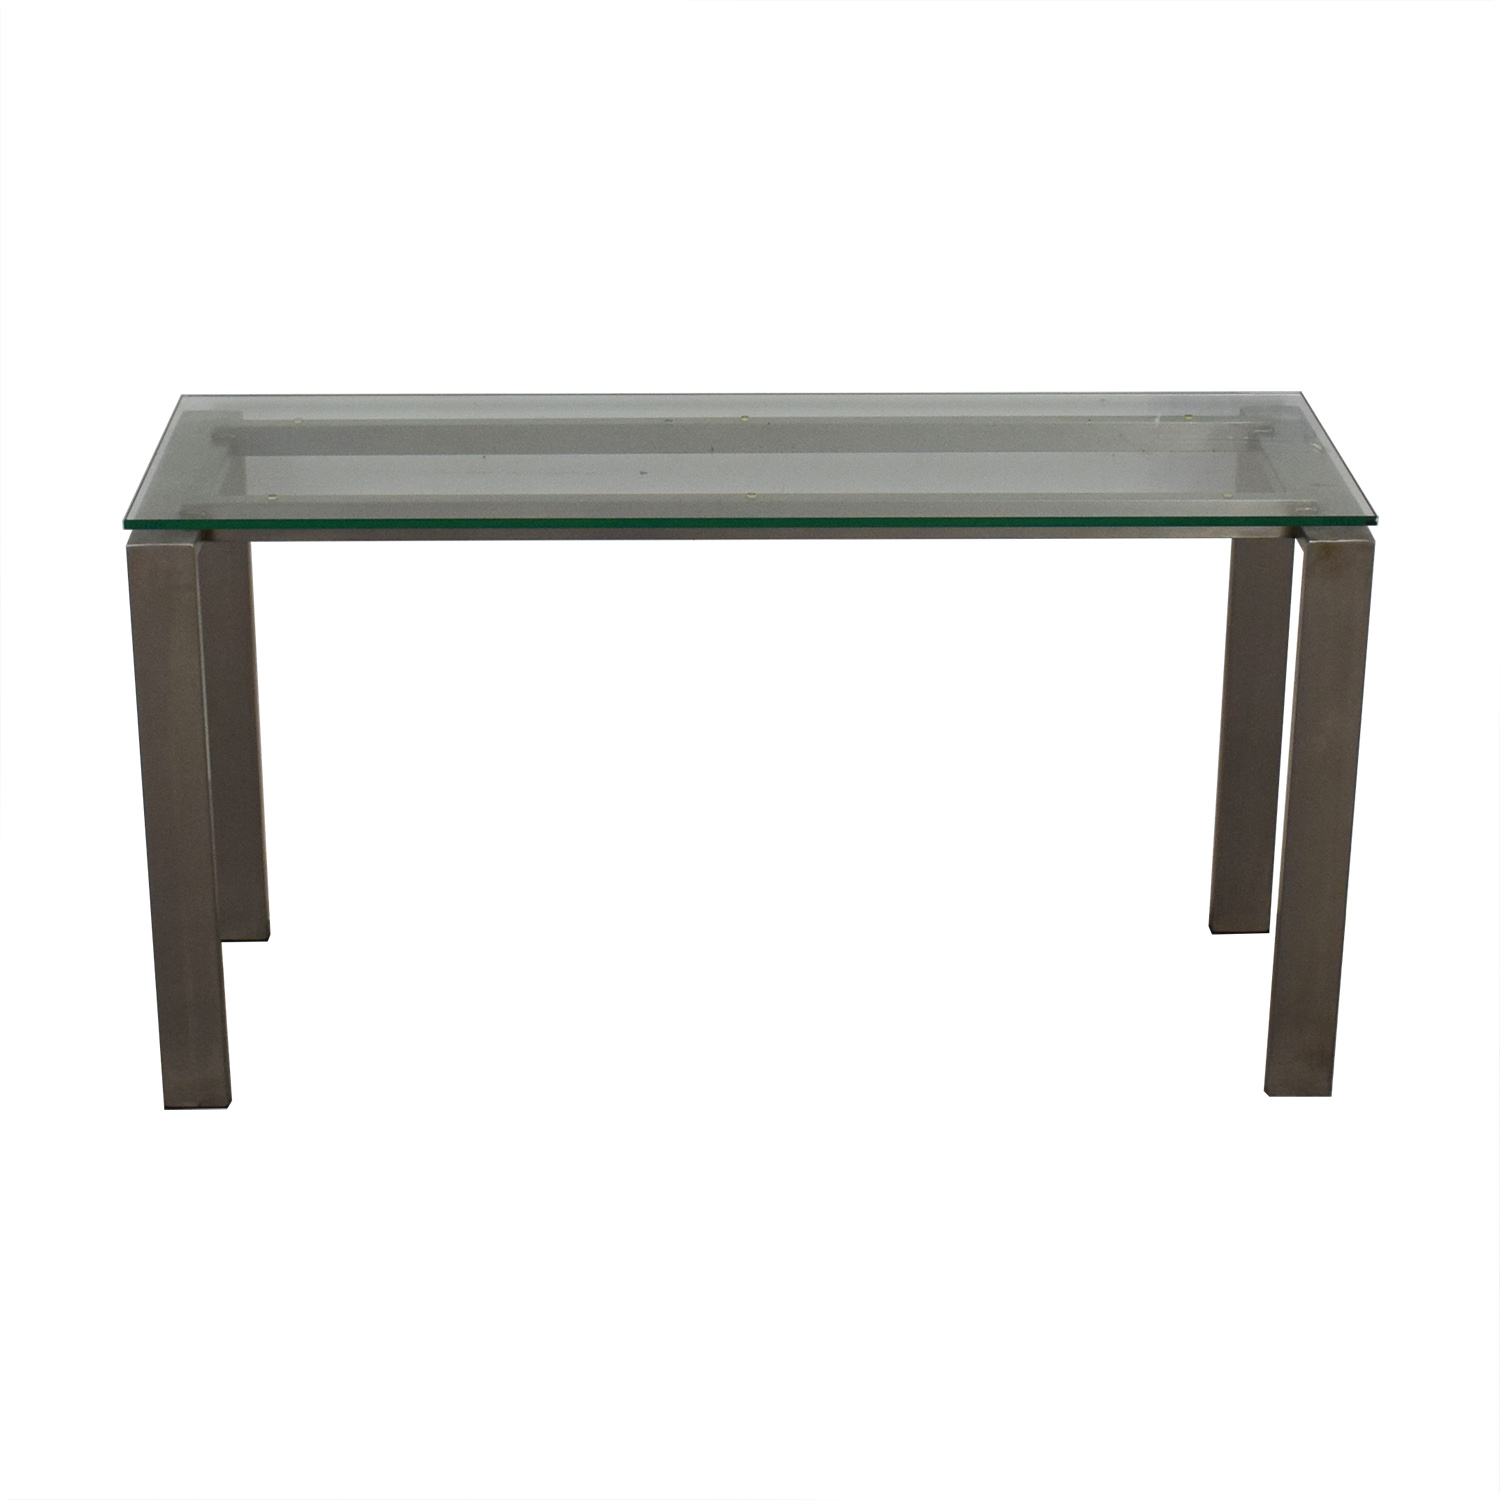 Room & Board Room & Board Rand Glass and Stainless Steel Table nj